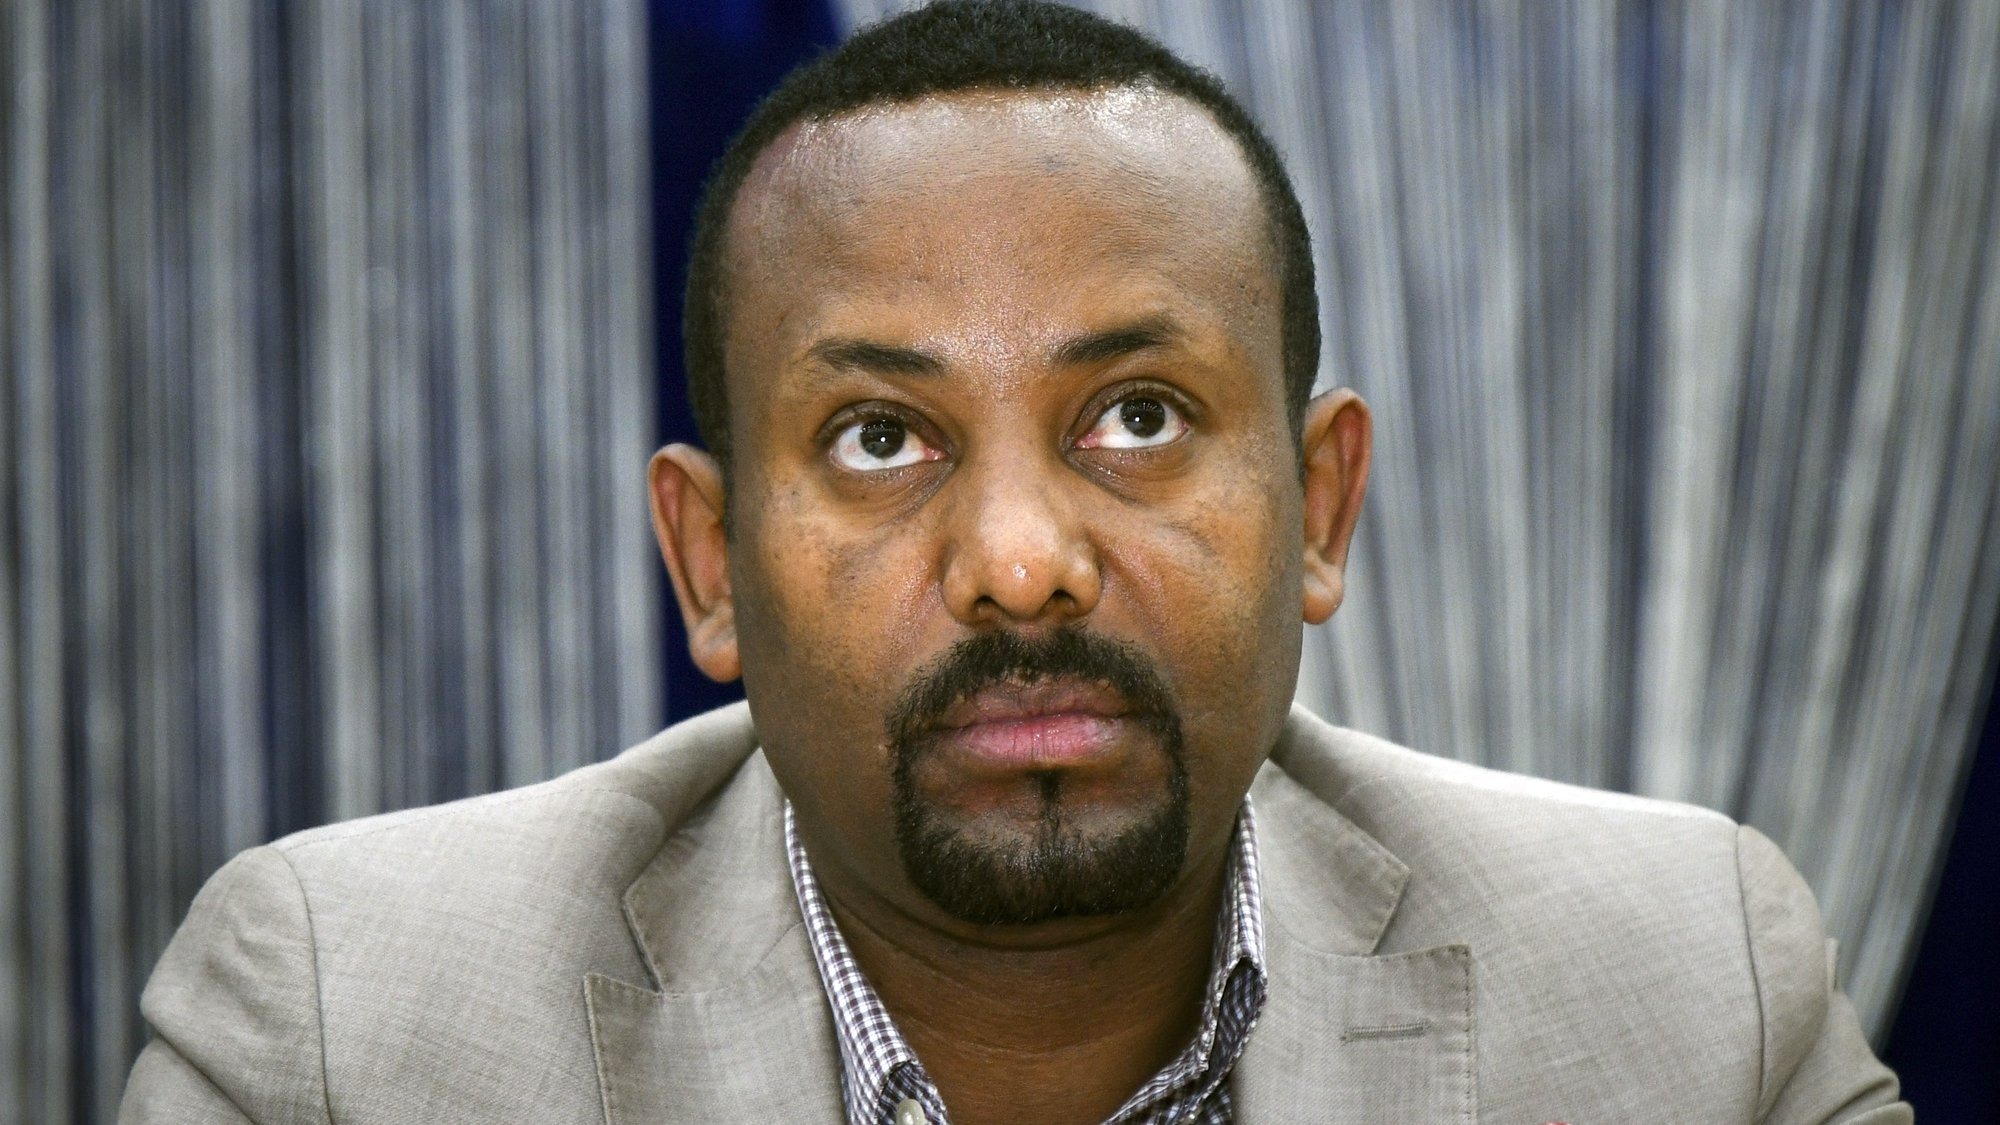 epa08842824 (FILE) - The then leader of the 'Oromo Peoples Democratic Organization' (OPDO), now Prime Minister Abiy Ahmed looks on during a news conference in Aba Geda, Ethiopia, 02 November 2017 (reissued 26 November 2020). Ethiopia's prime minister announced on 26 November that the army has been ordered to move on the Tigray regional capital after the end of a 72-hour ultimatum to the region's leaders to surrender.  EPA/STR